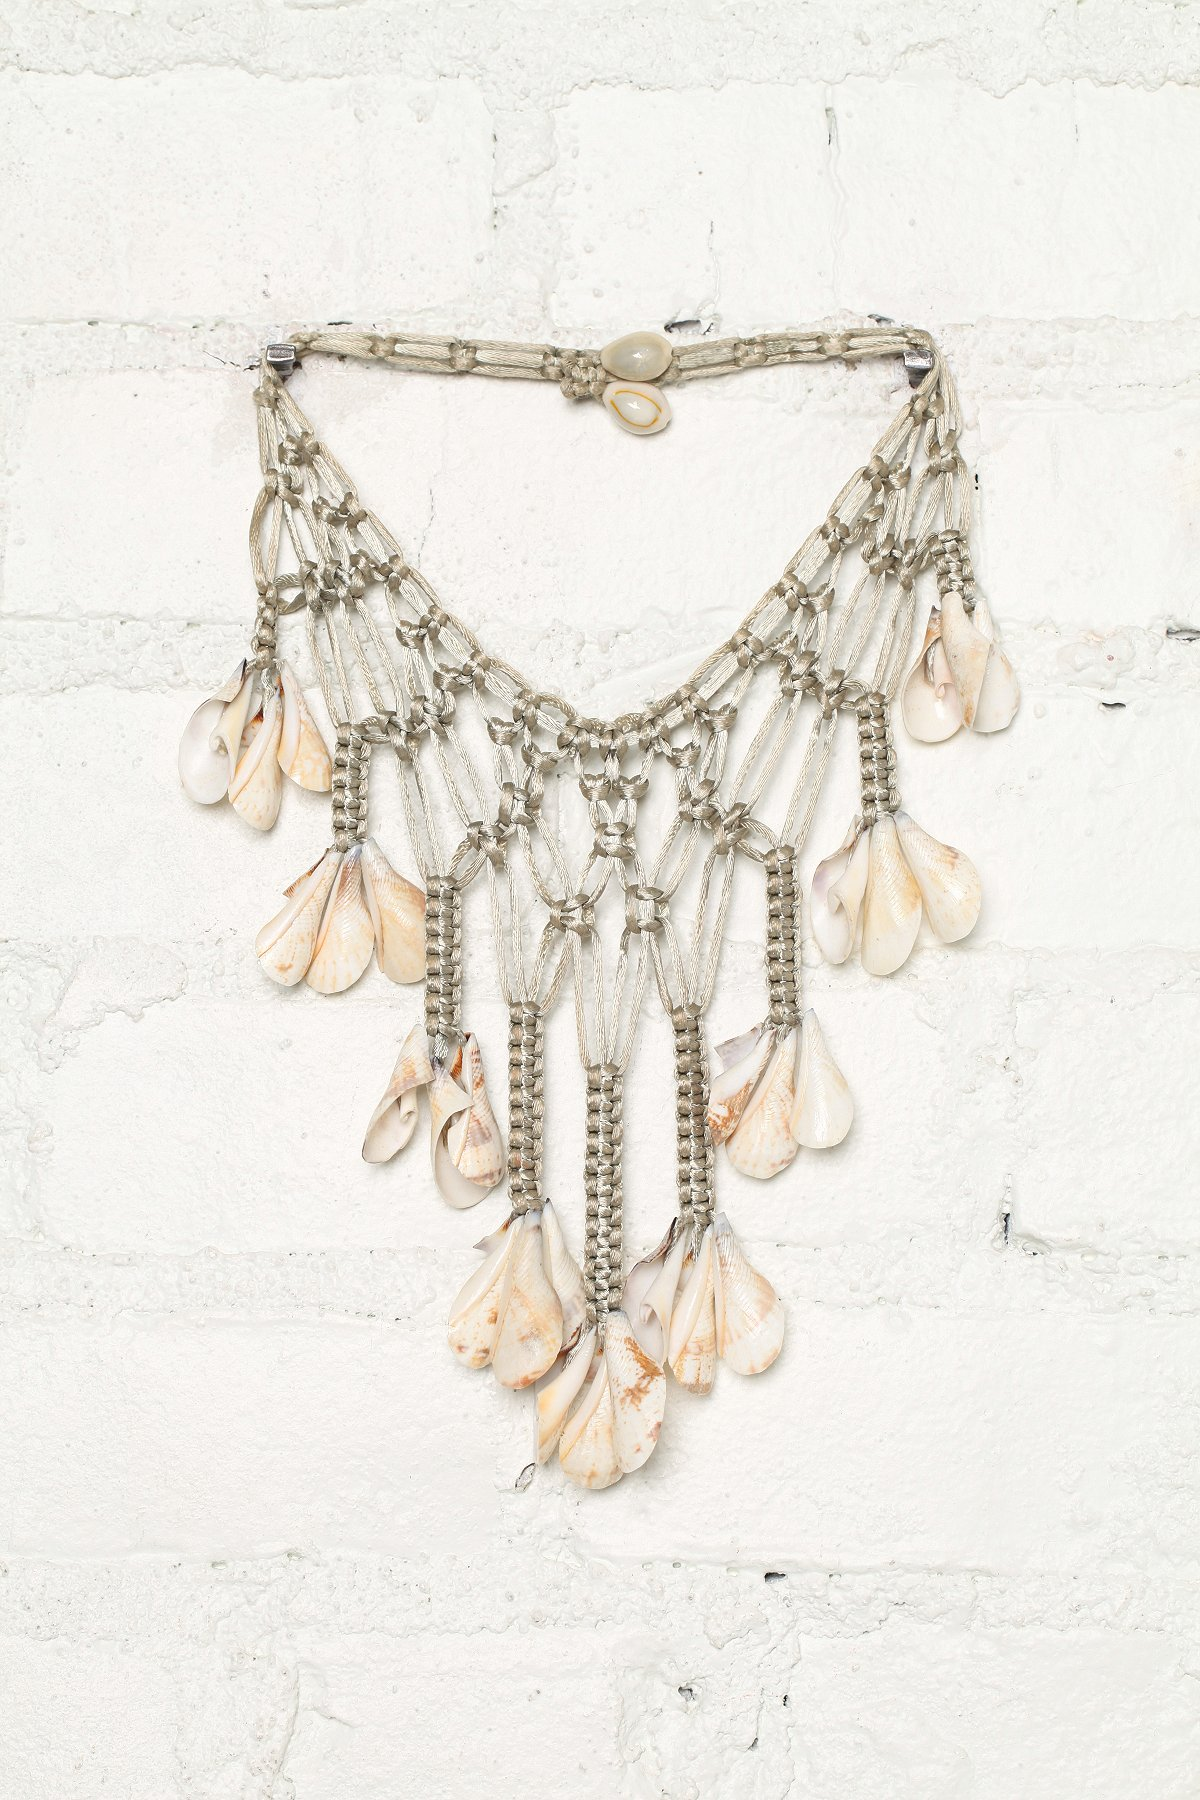 Vintage Woven Seashell Necklace